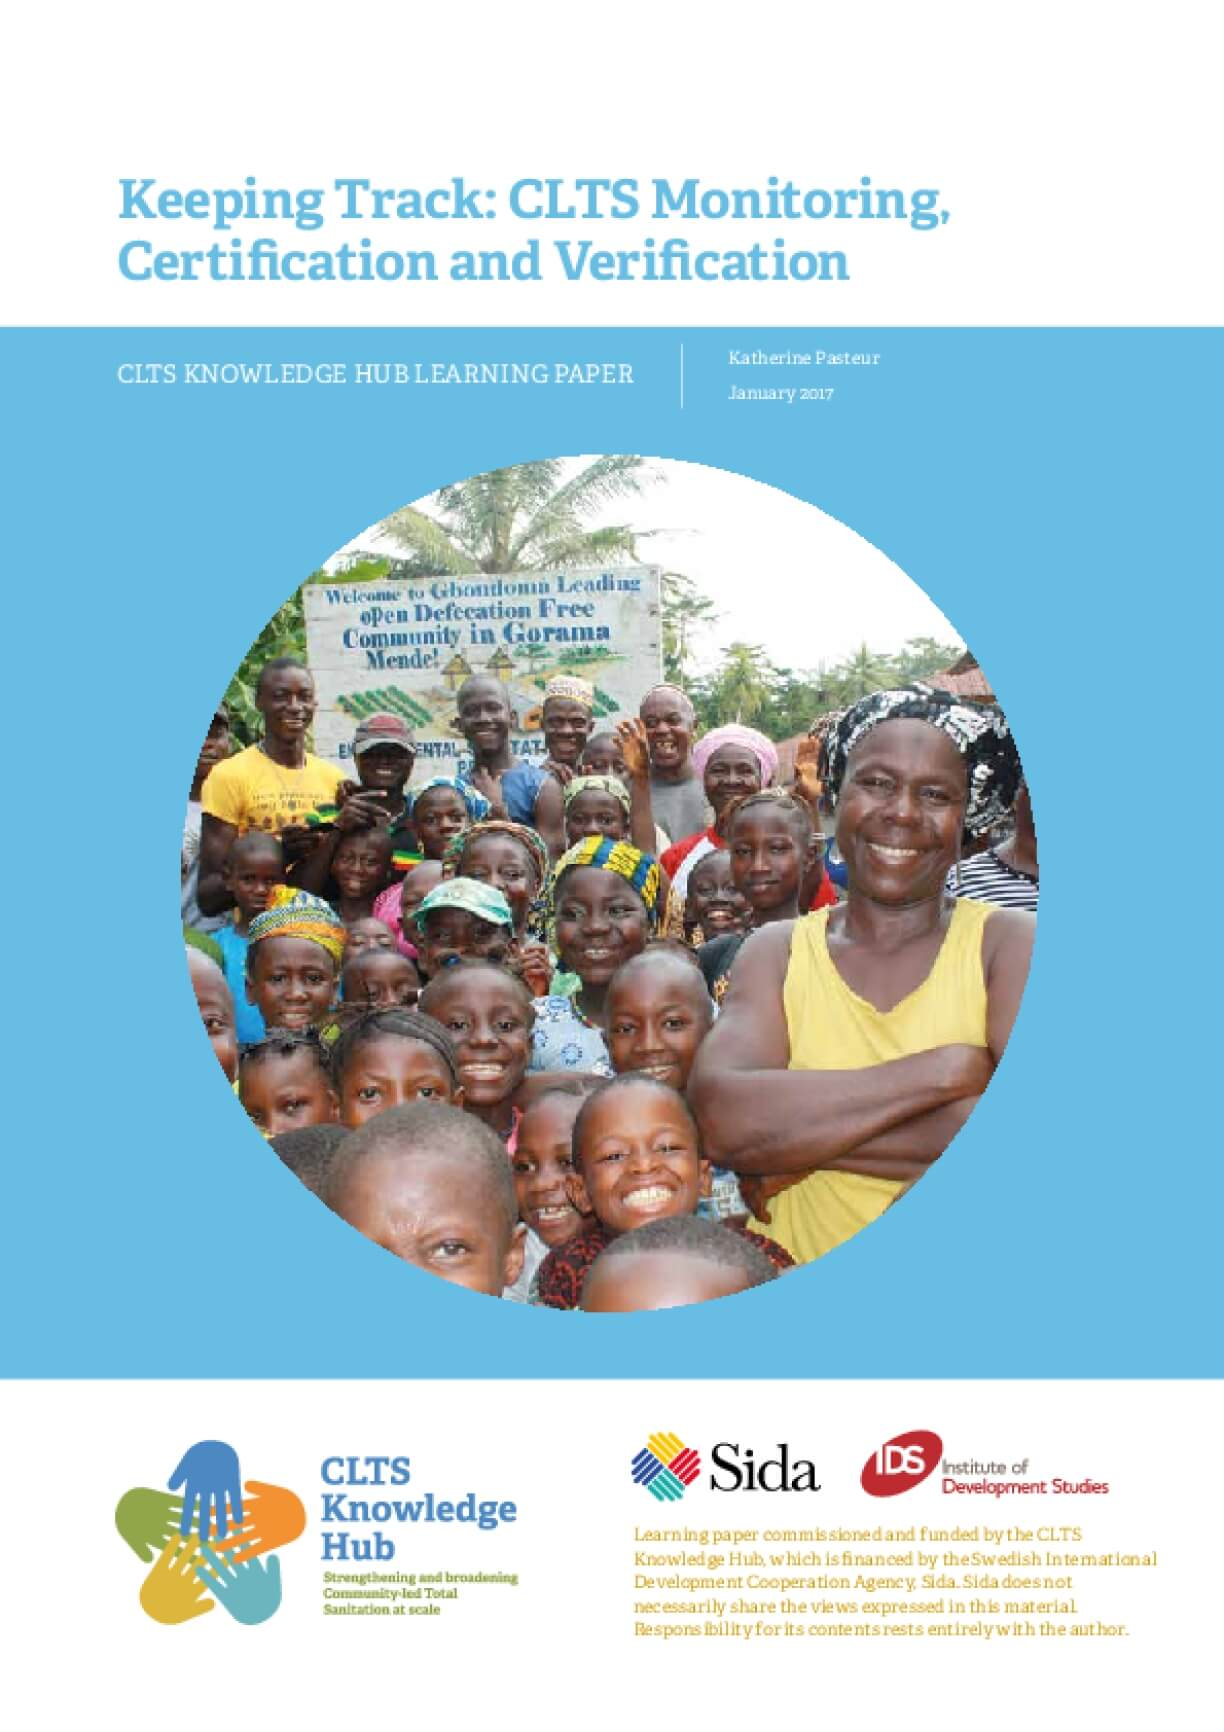 Keeping Track: CLTS Monitoring, Certification and Verification